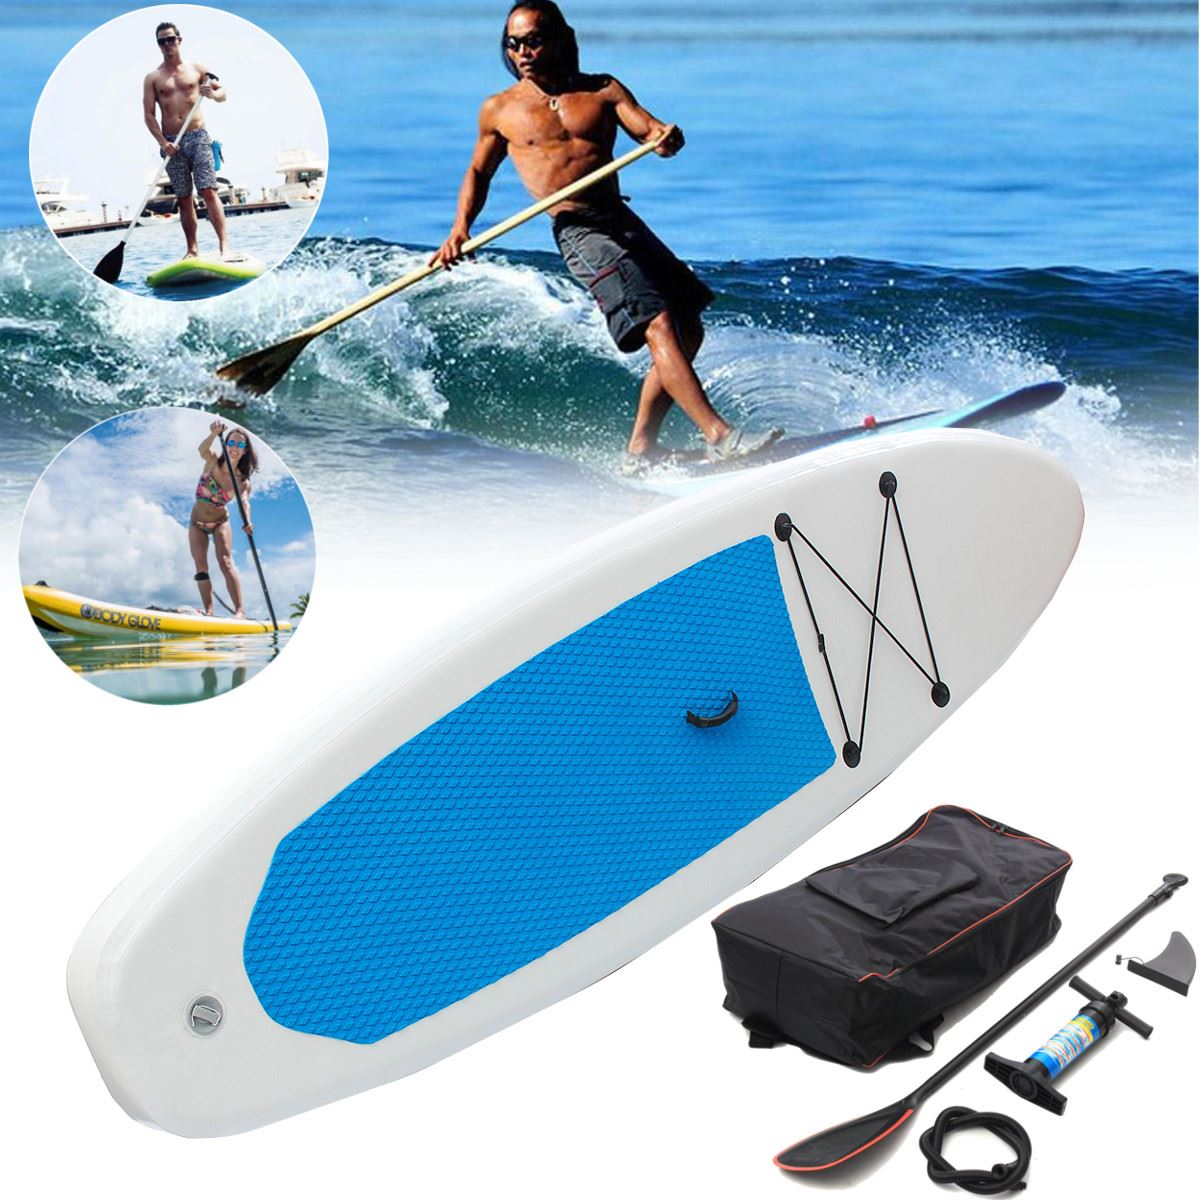 Gofun 122x27x4 pulgadas Stand Up Paddle tabla de surf inflable SUP Set Wave Rider + bomba inflable surf Board paddle boat